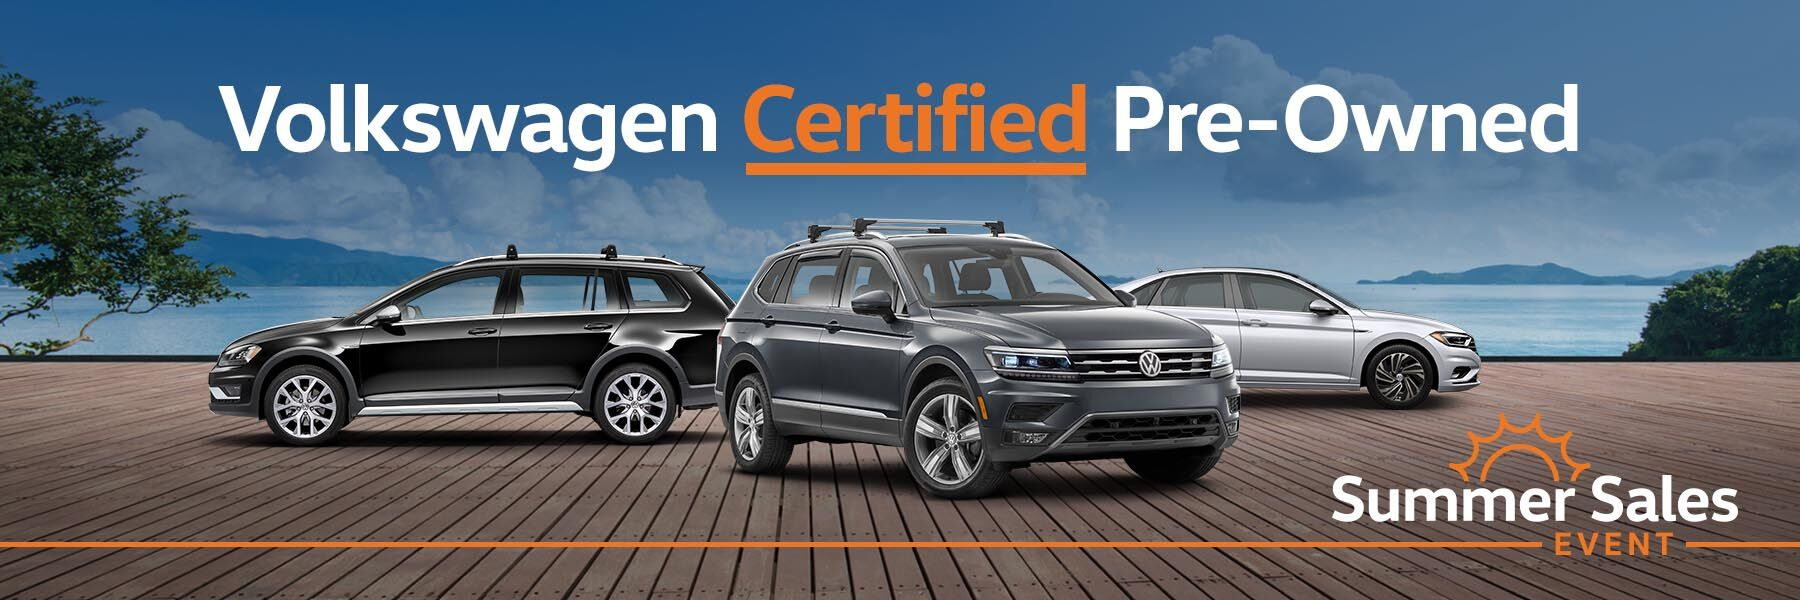 Volkswagen Certified Pre-Owned in Longview, TX